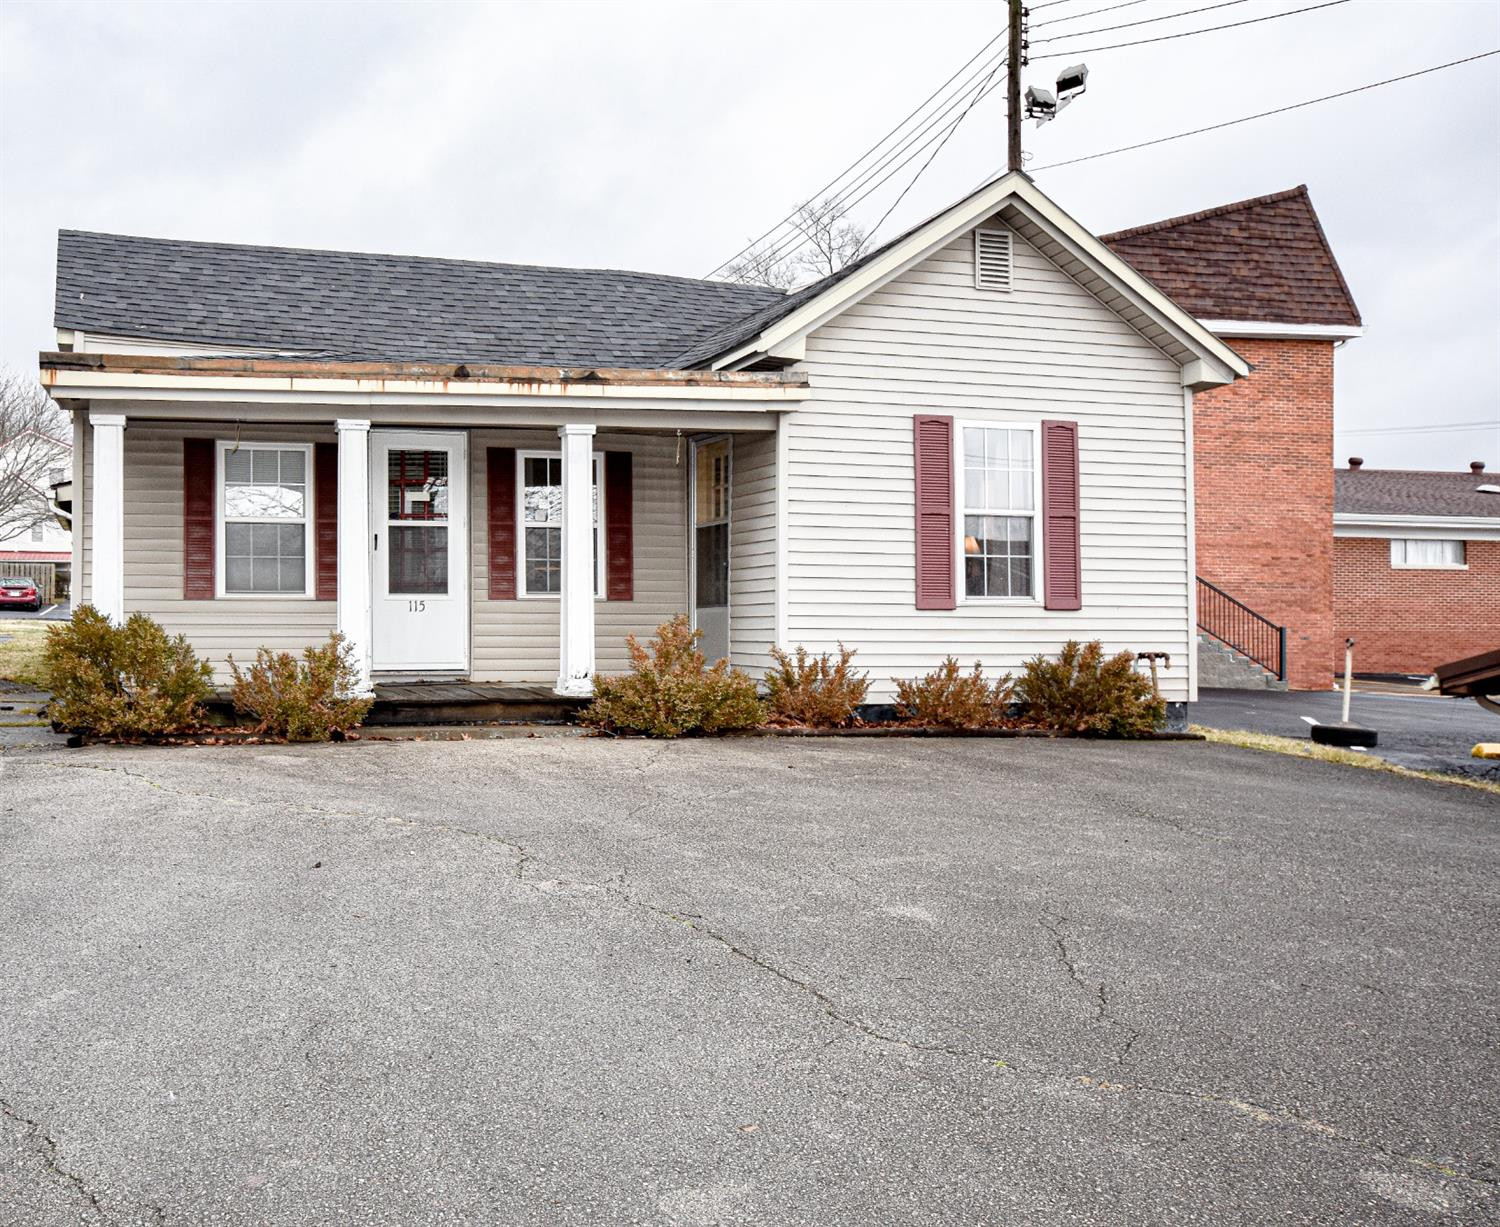 115 E Main, Mt Sterling, KY 40353